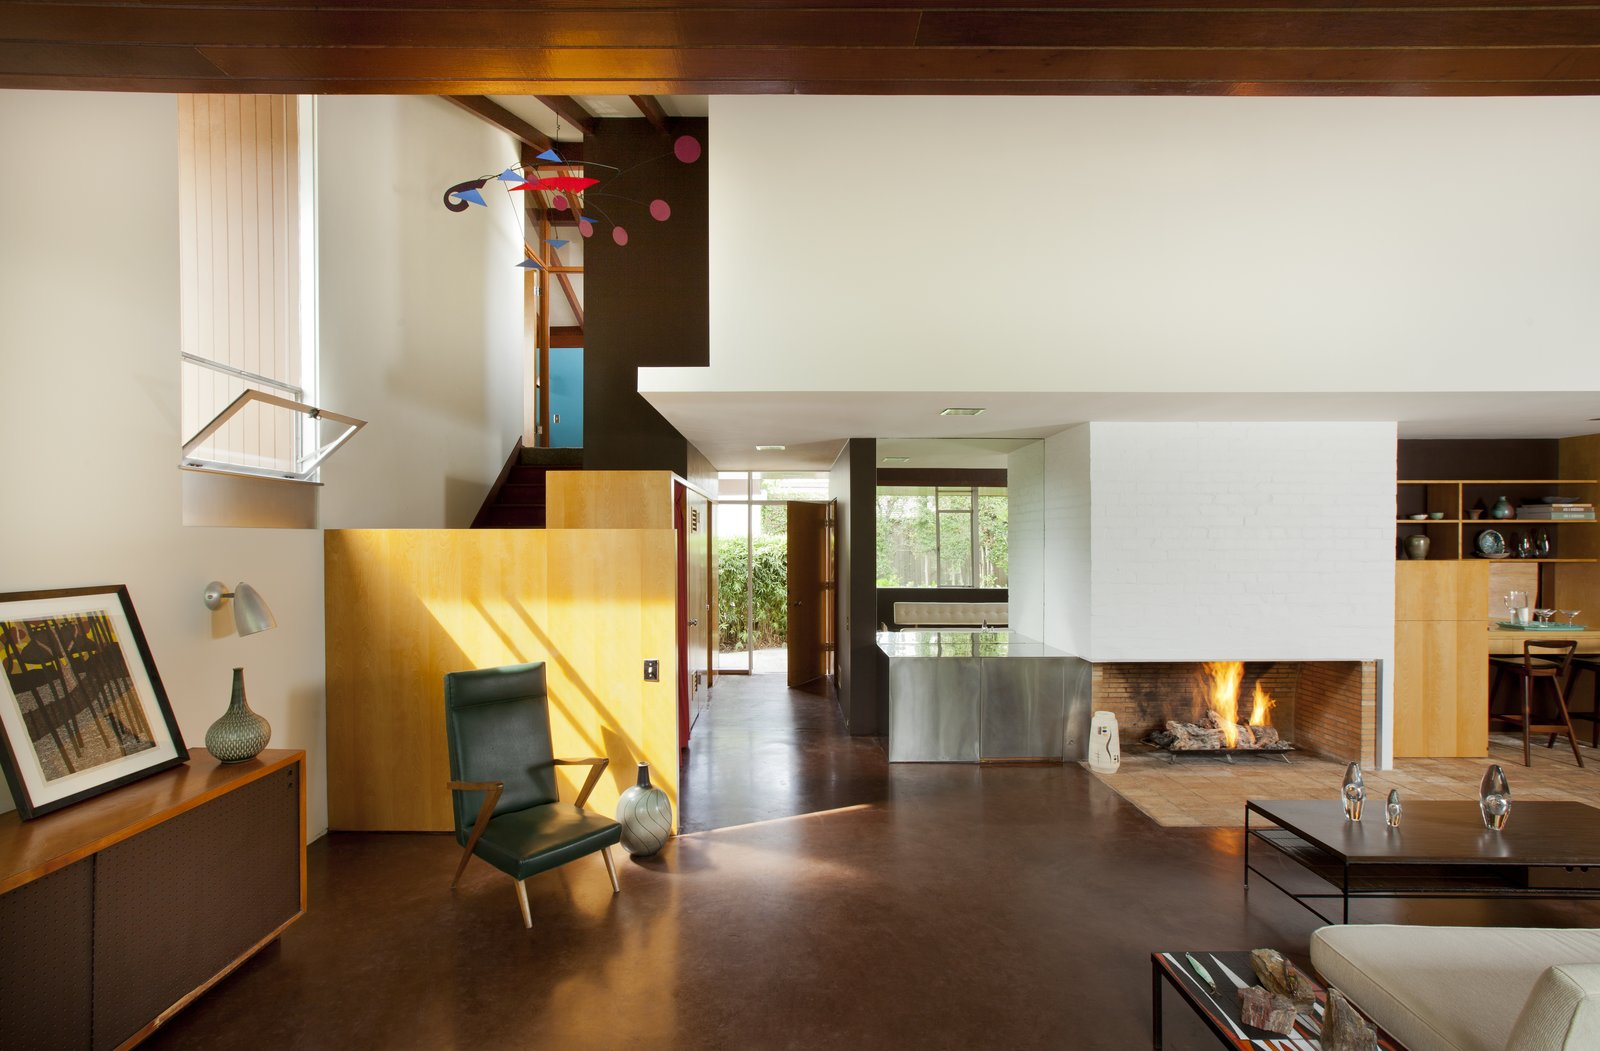 7 Preserved Modern Architecture Icons in Los Angeles